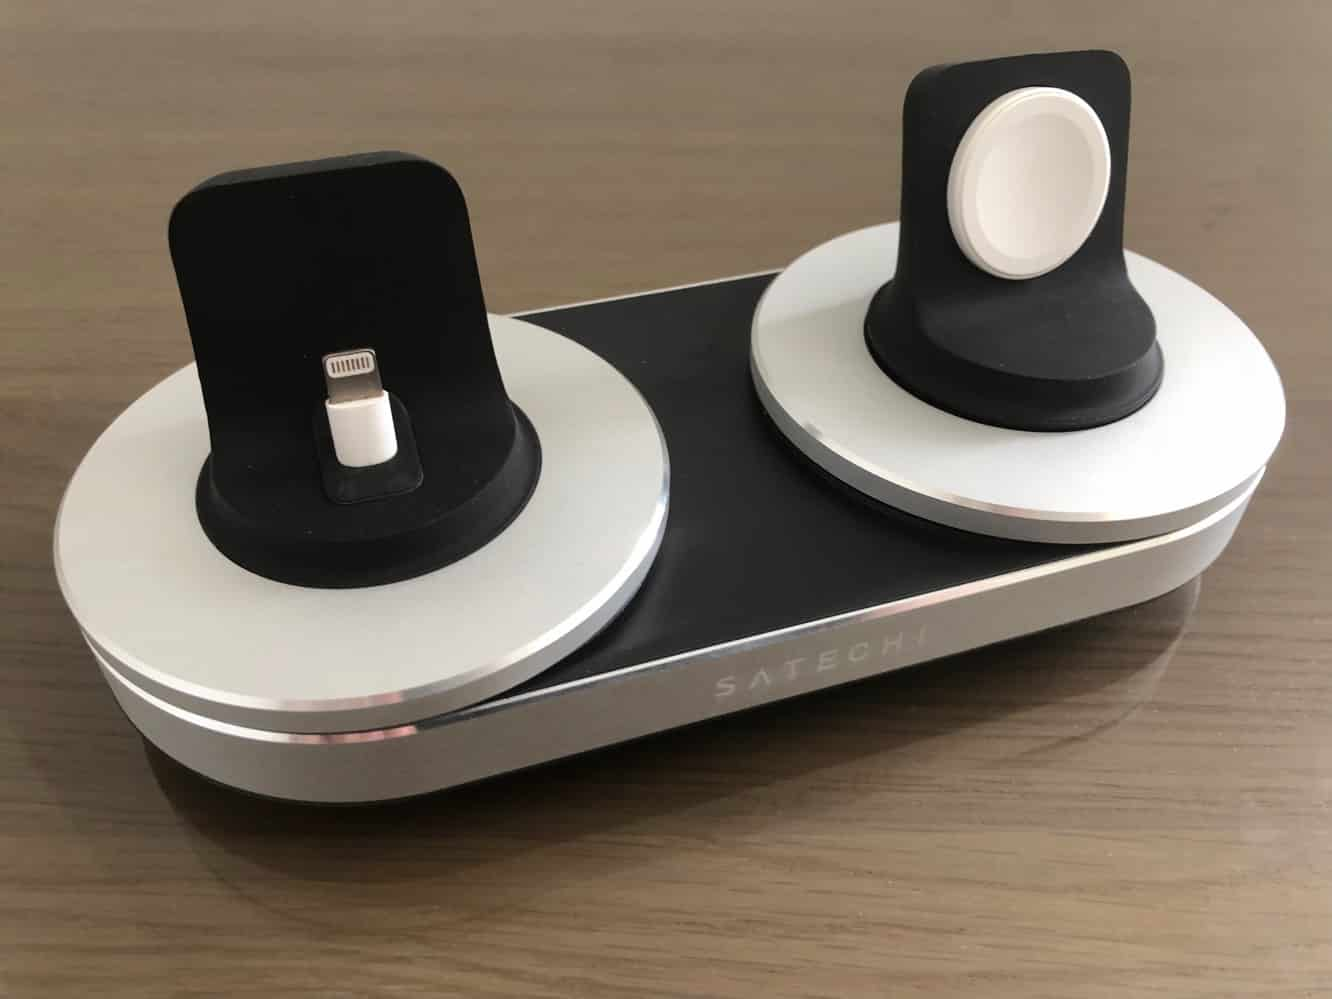 Review: Satechi Type-C Dual Charging Station for iPhone and Apple Watch